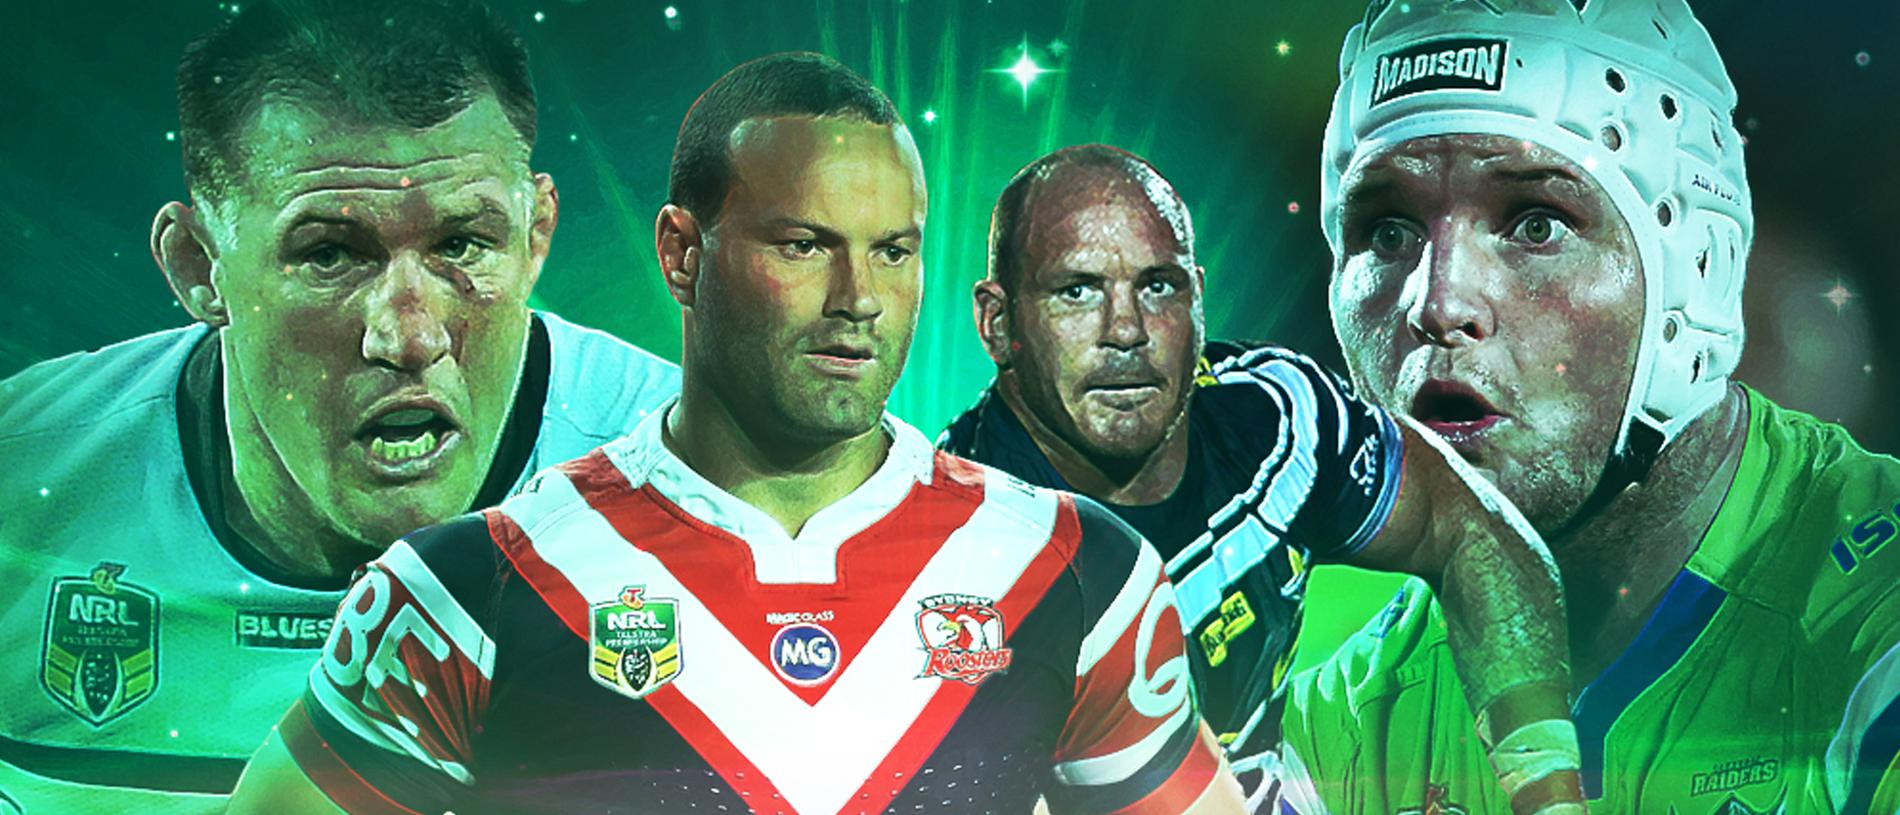 Paul Gallen, Boyd Cordner, Matt Scott and Jarrod Croker look set be some of the last of a dying breed.